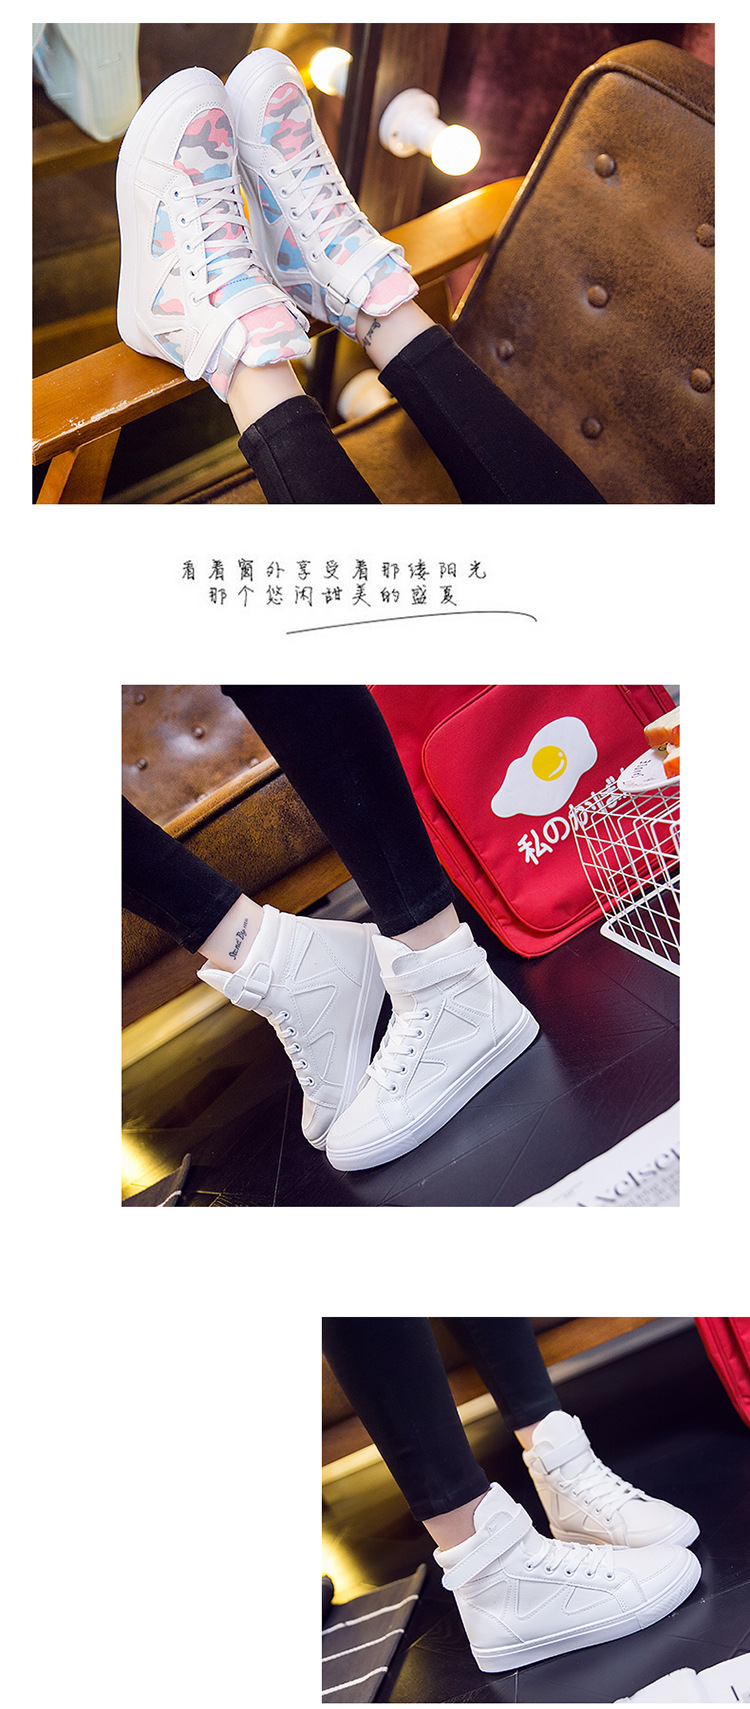 High quality lady canvas shoes 2017 high  help sports shoes star woman breathable lace black brand shoes sapato feminino